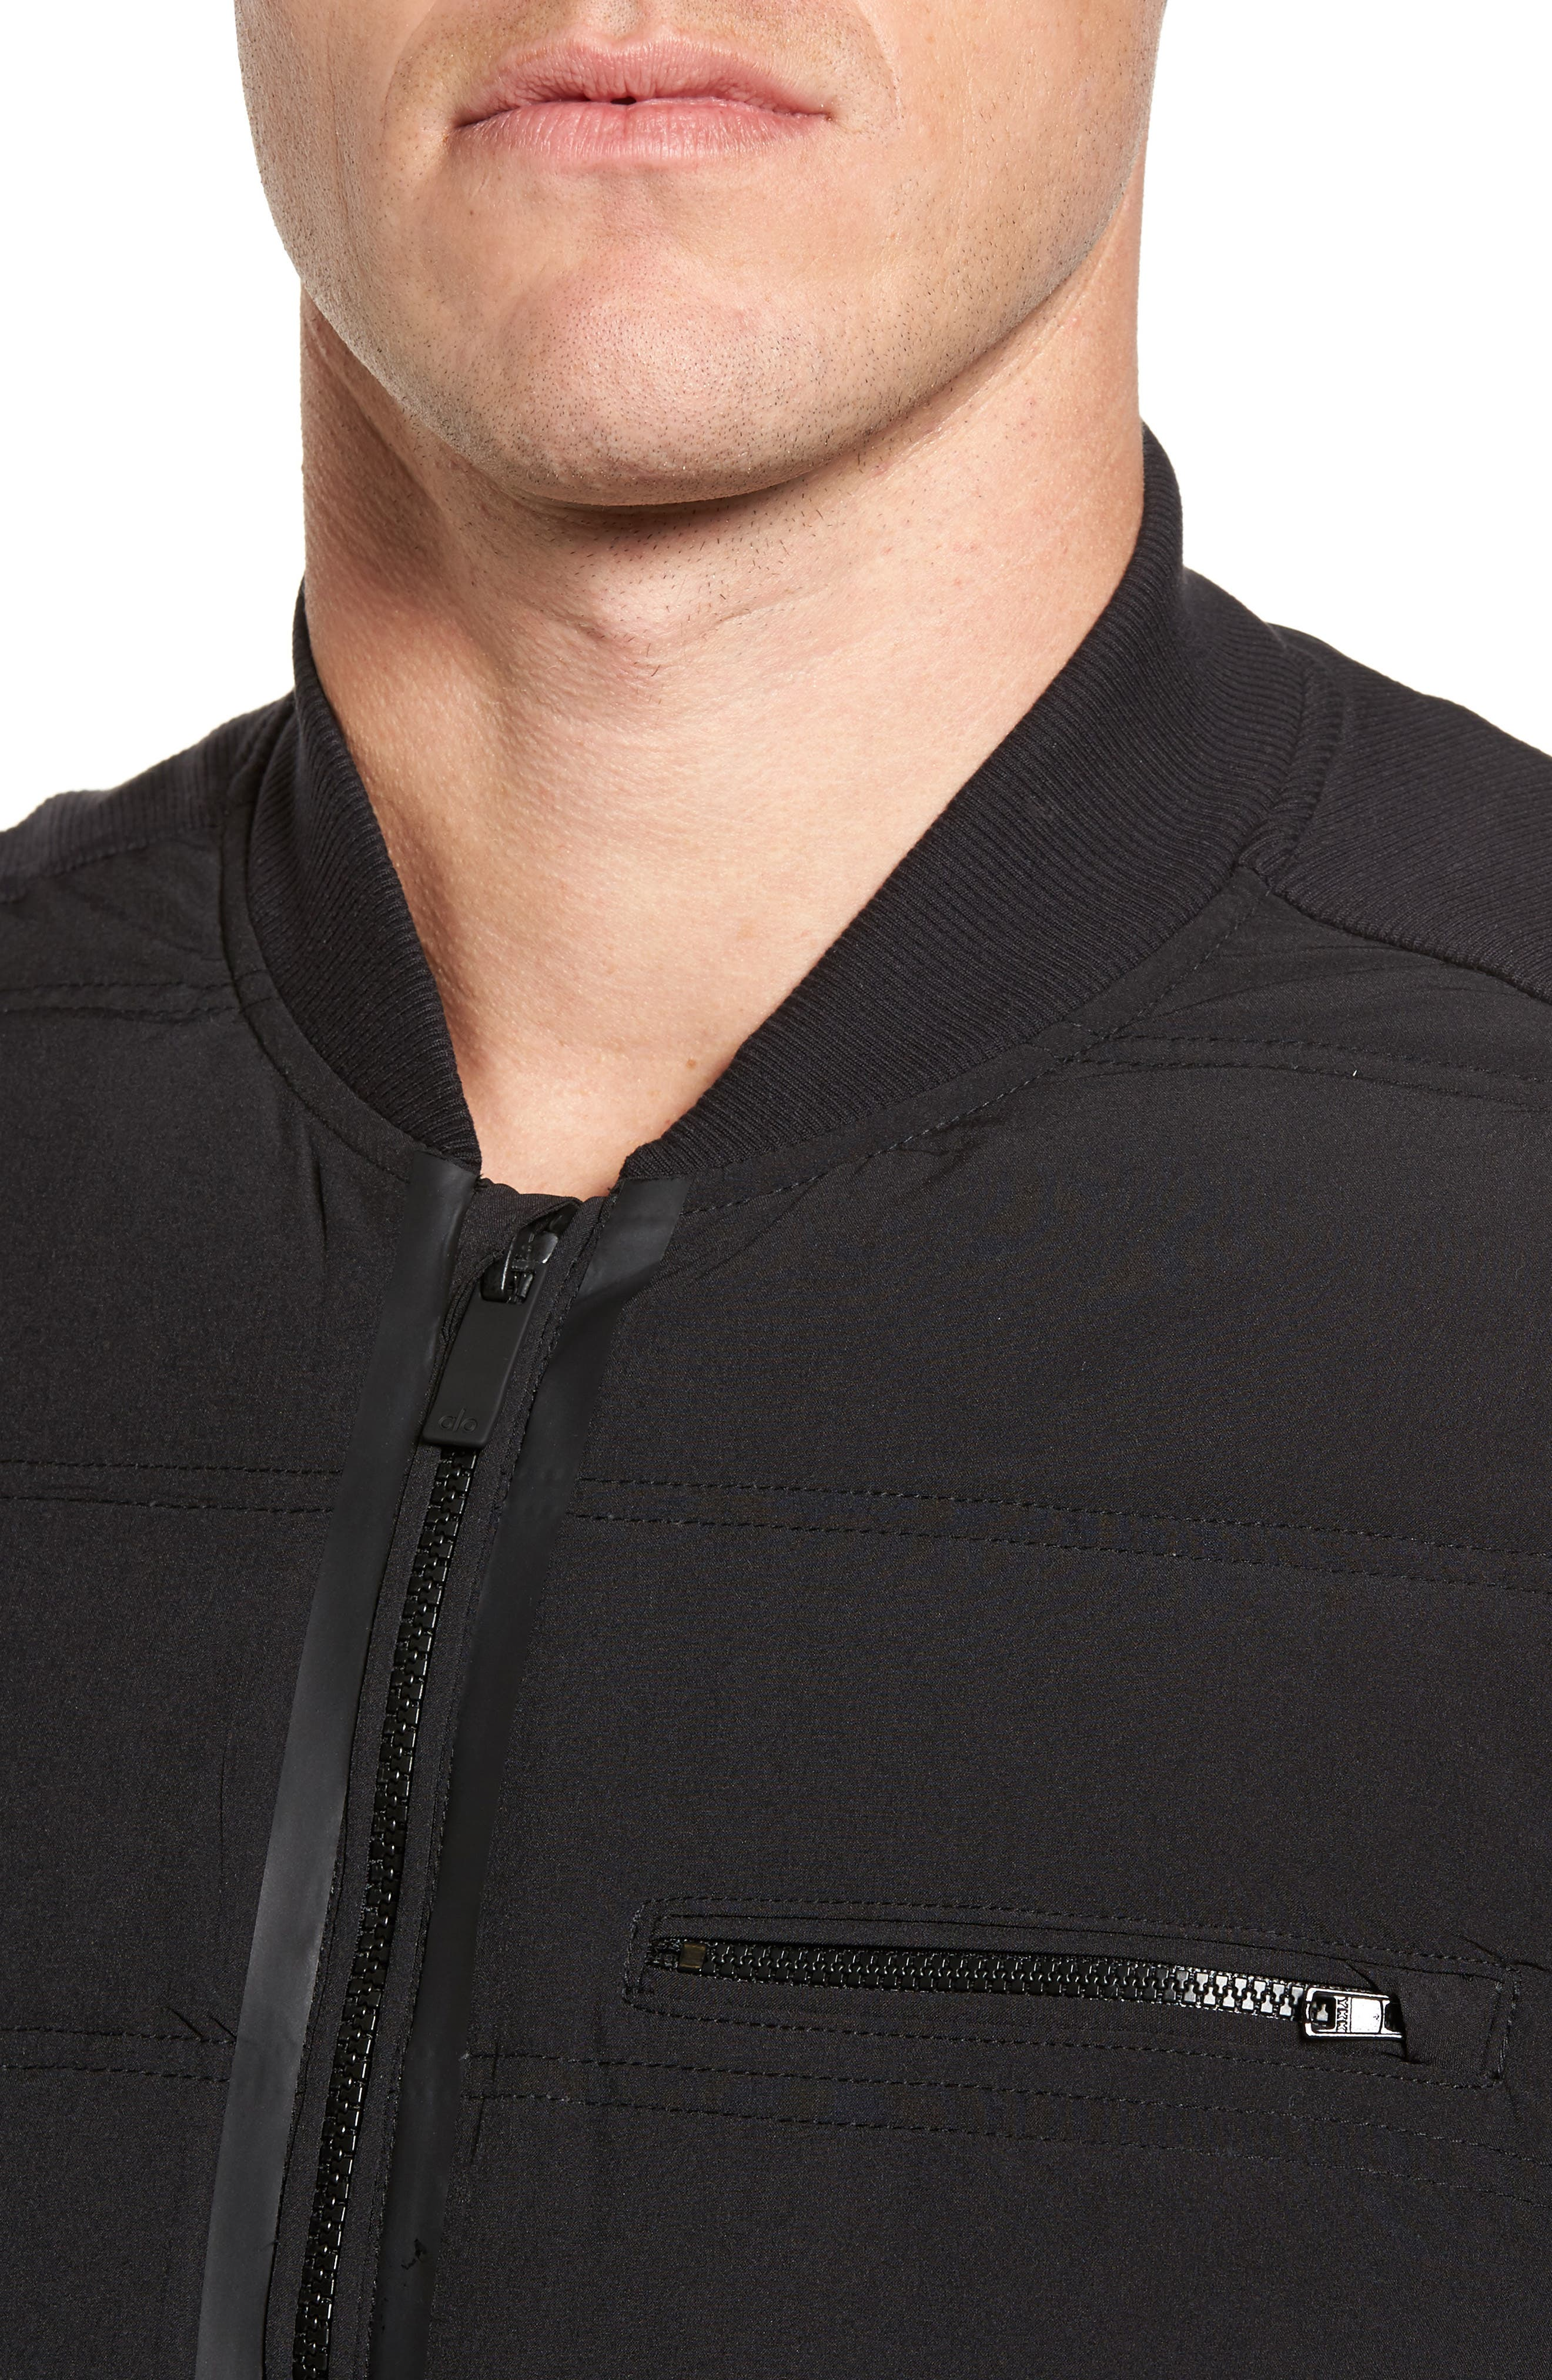 Mantra Relaxed Down Vest,                             Alternate thumbnail 4, color,                             Black